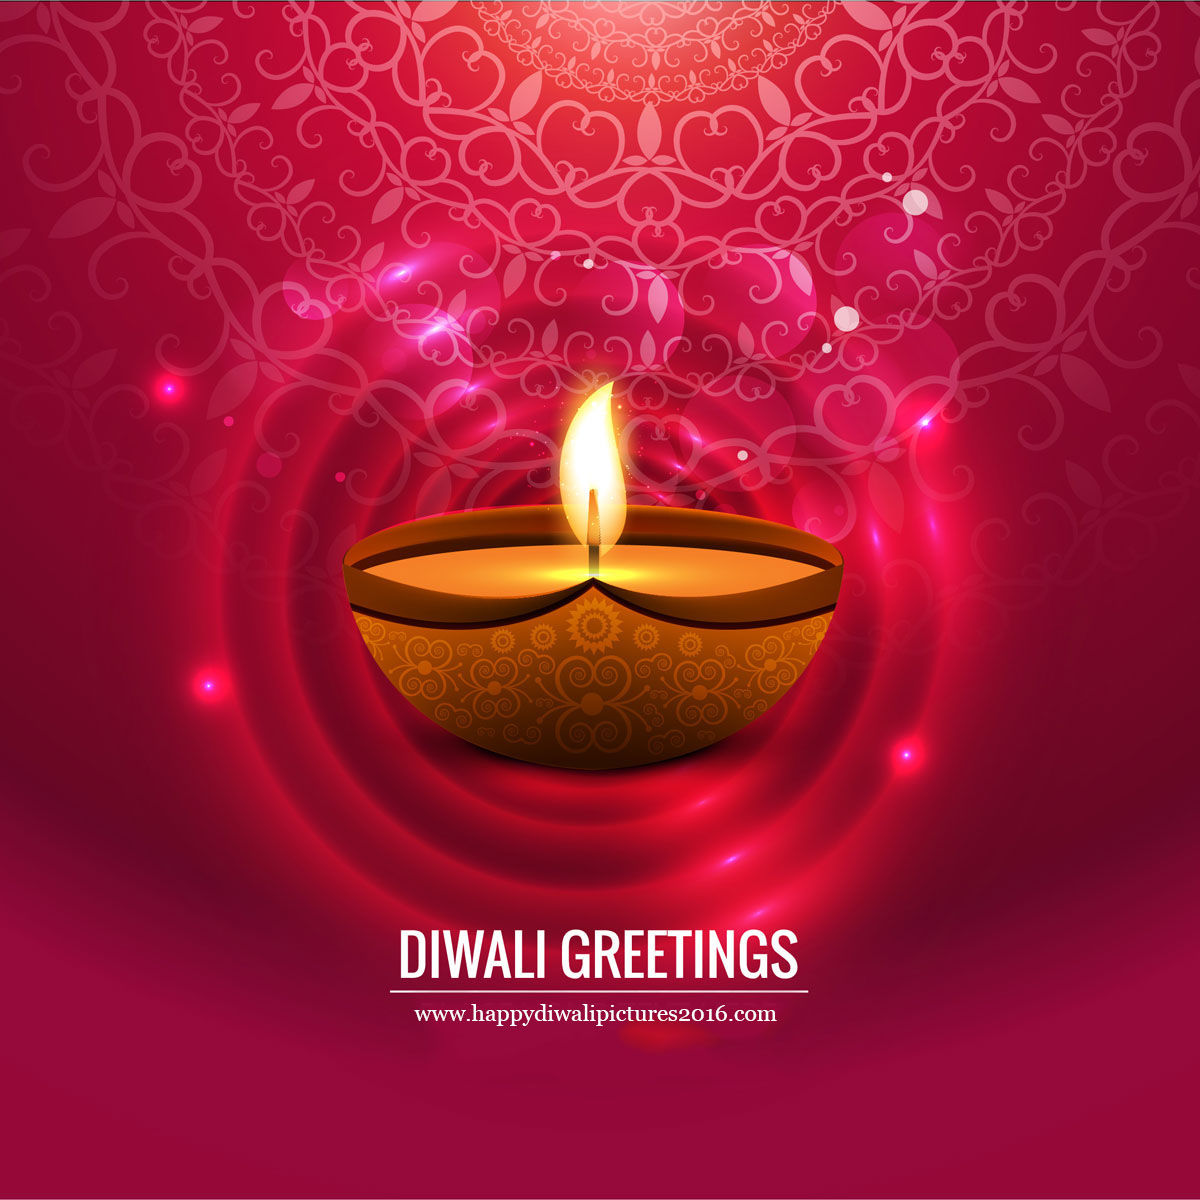 Happy Diwali Images Free Download 2016 Happy Diwali Images